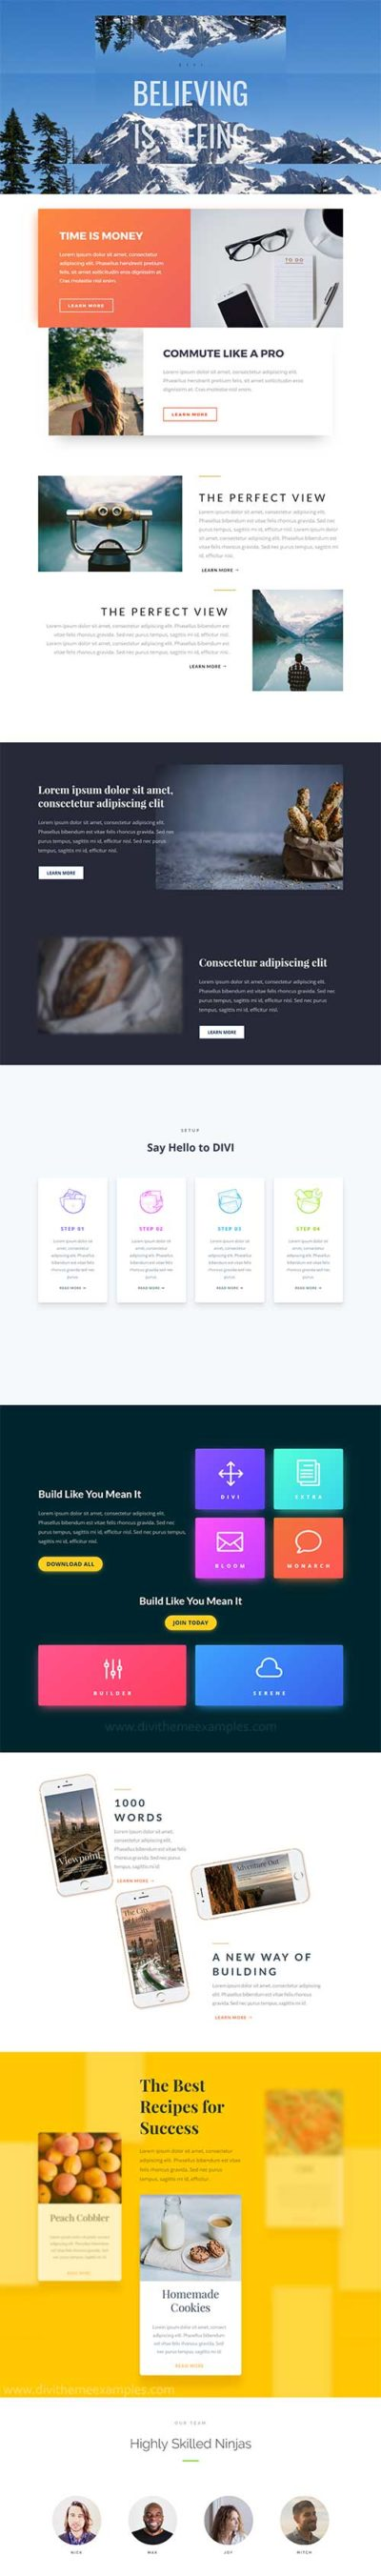 divi animations free layout template